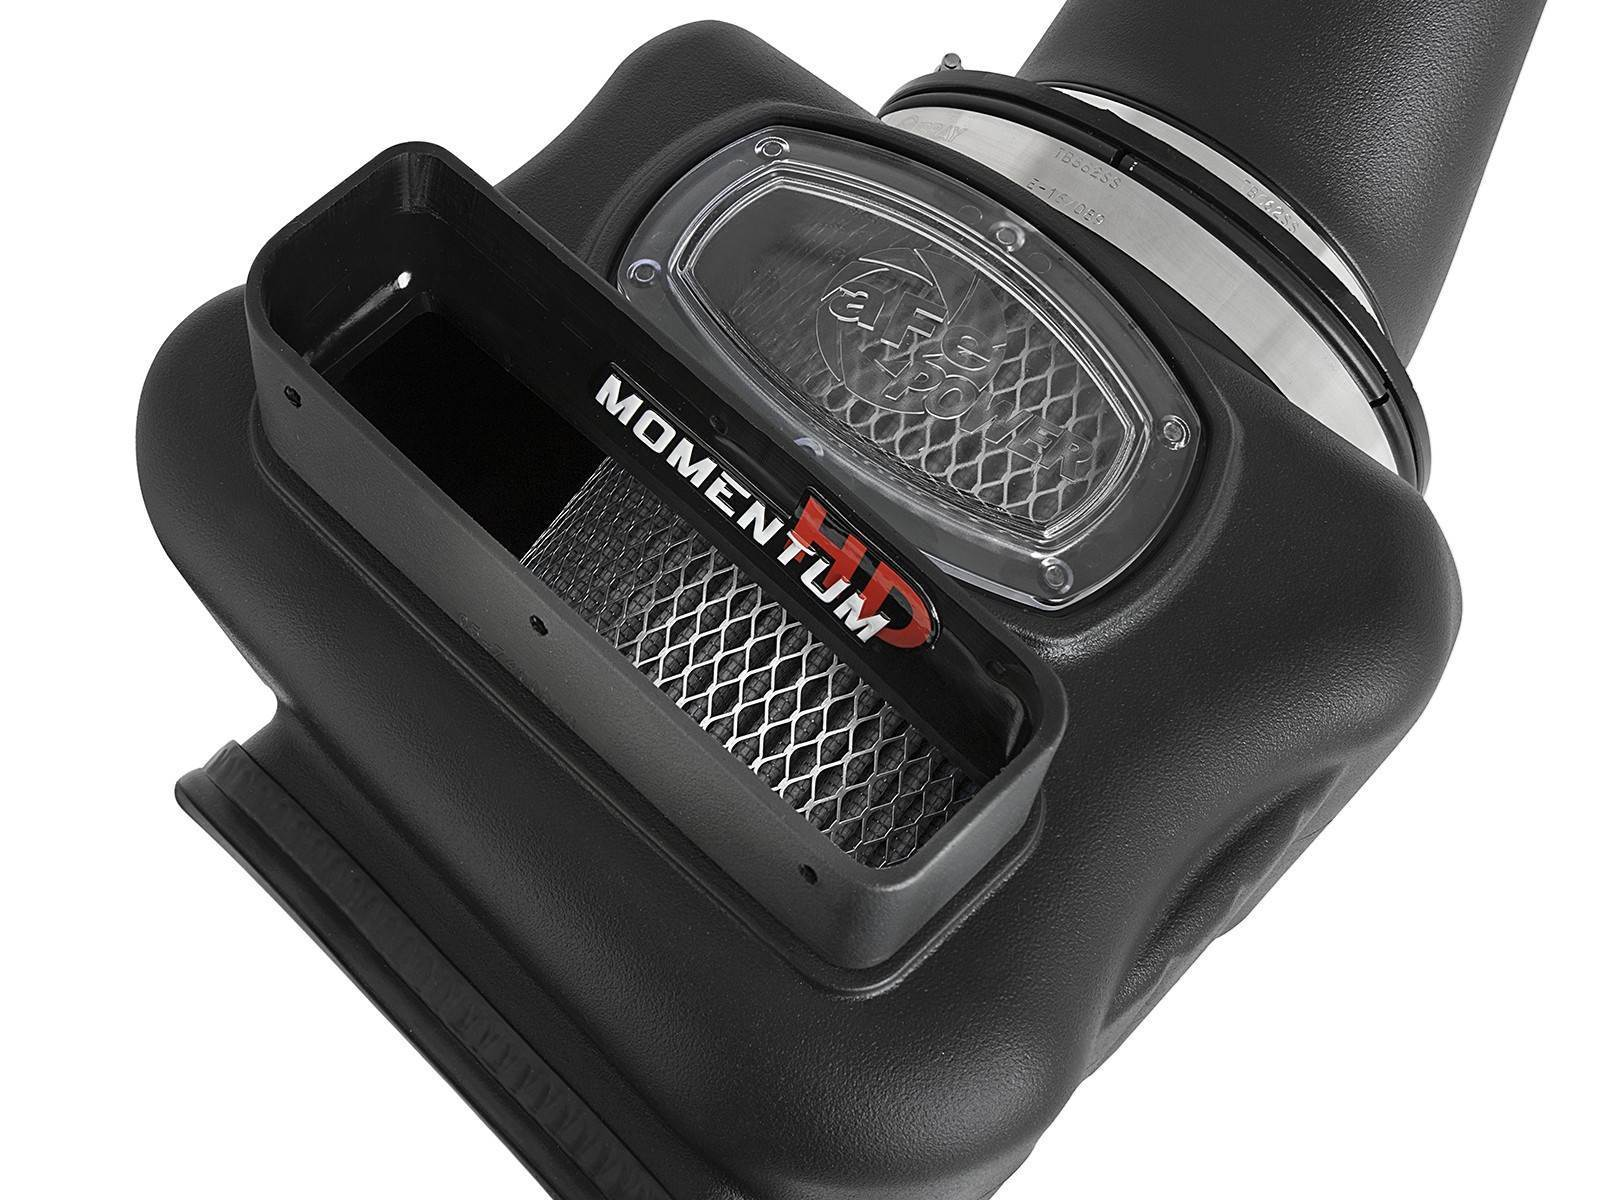 51-74008 - FE Momentum HD Cold Air Intake Pro Dry S for 2017-2018 GMC/Chevy Duramax 6.6L L5P diesels